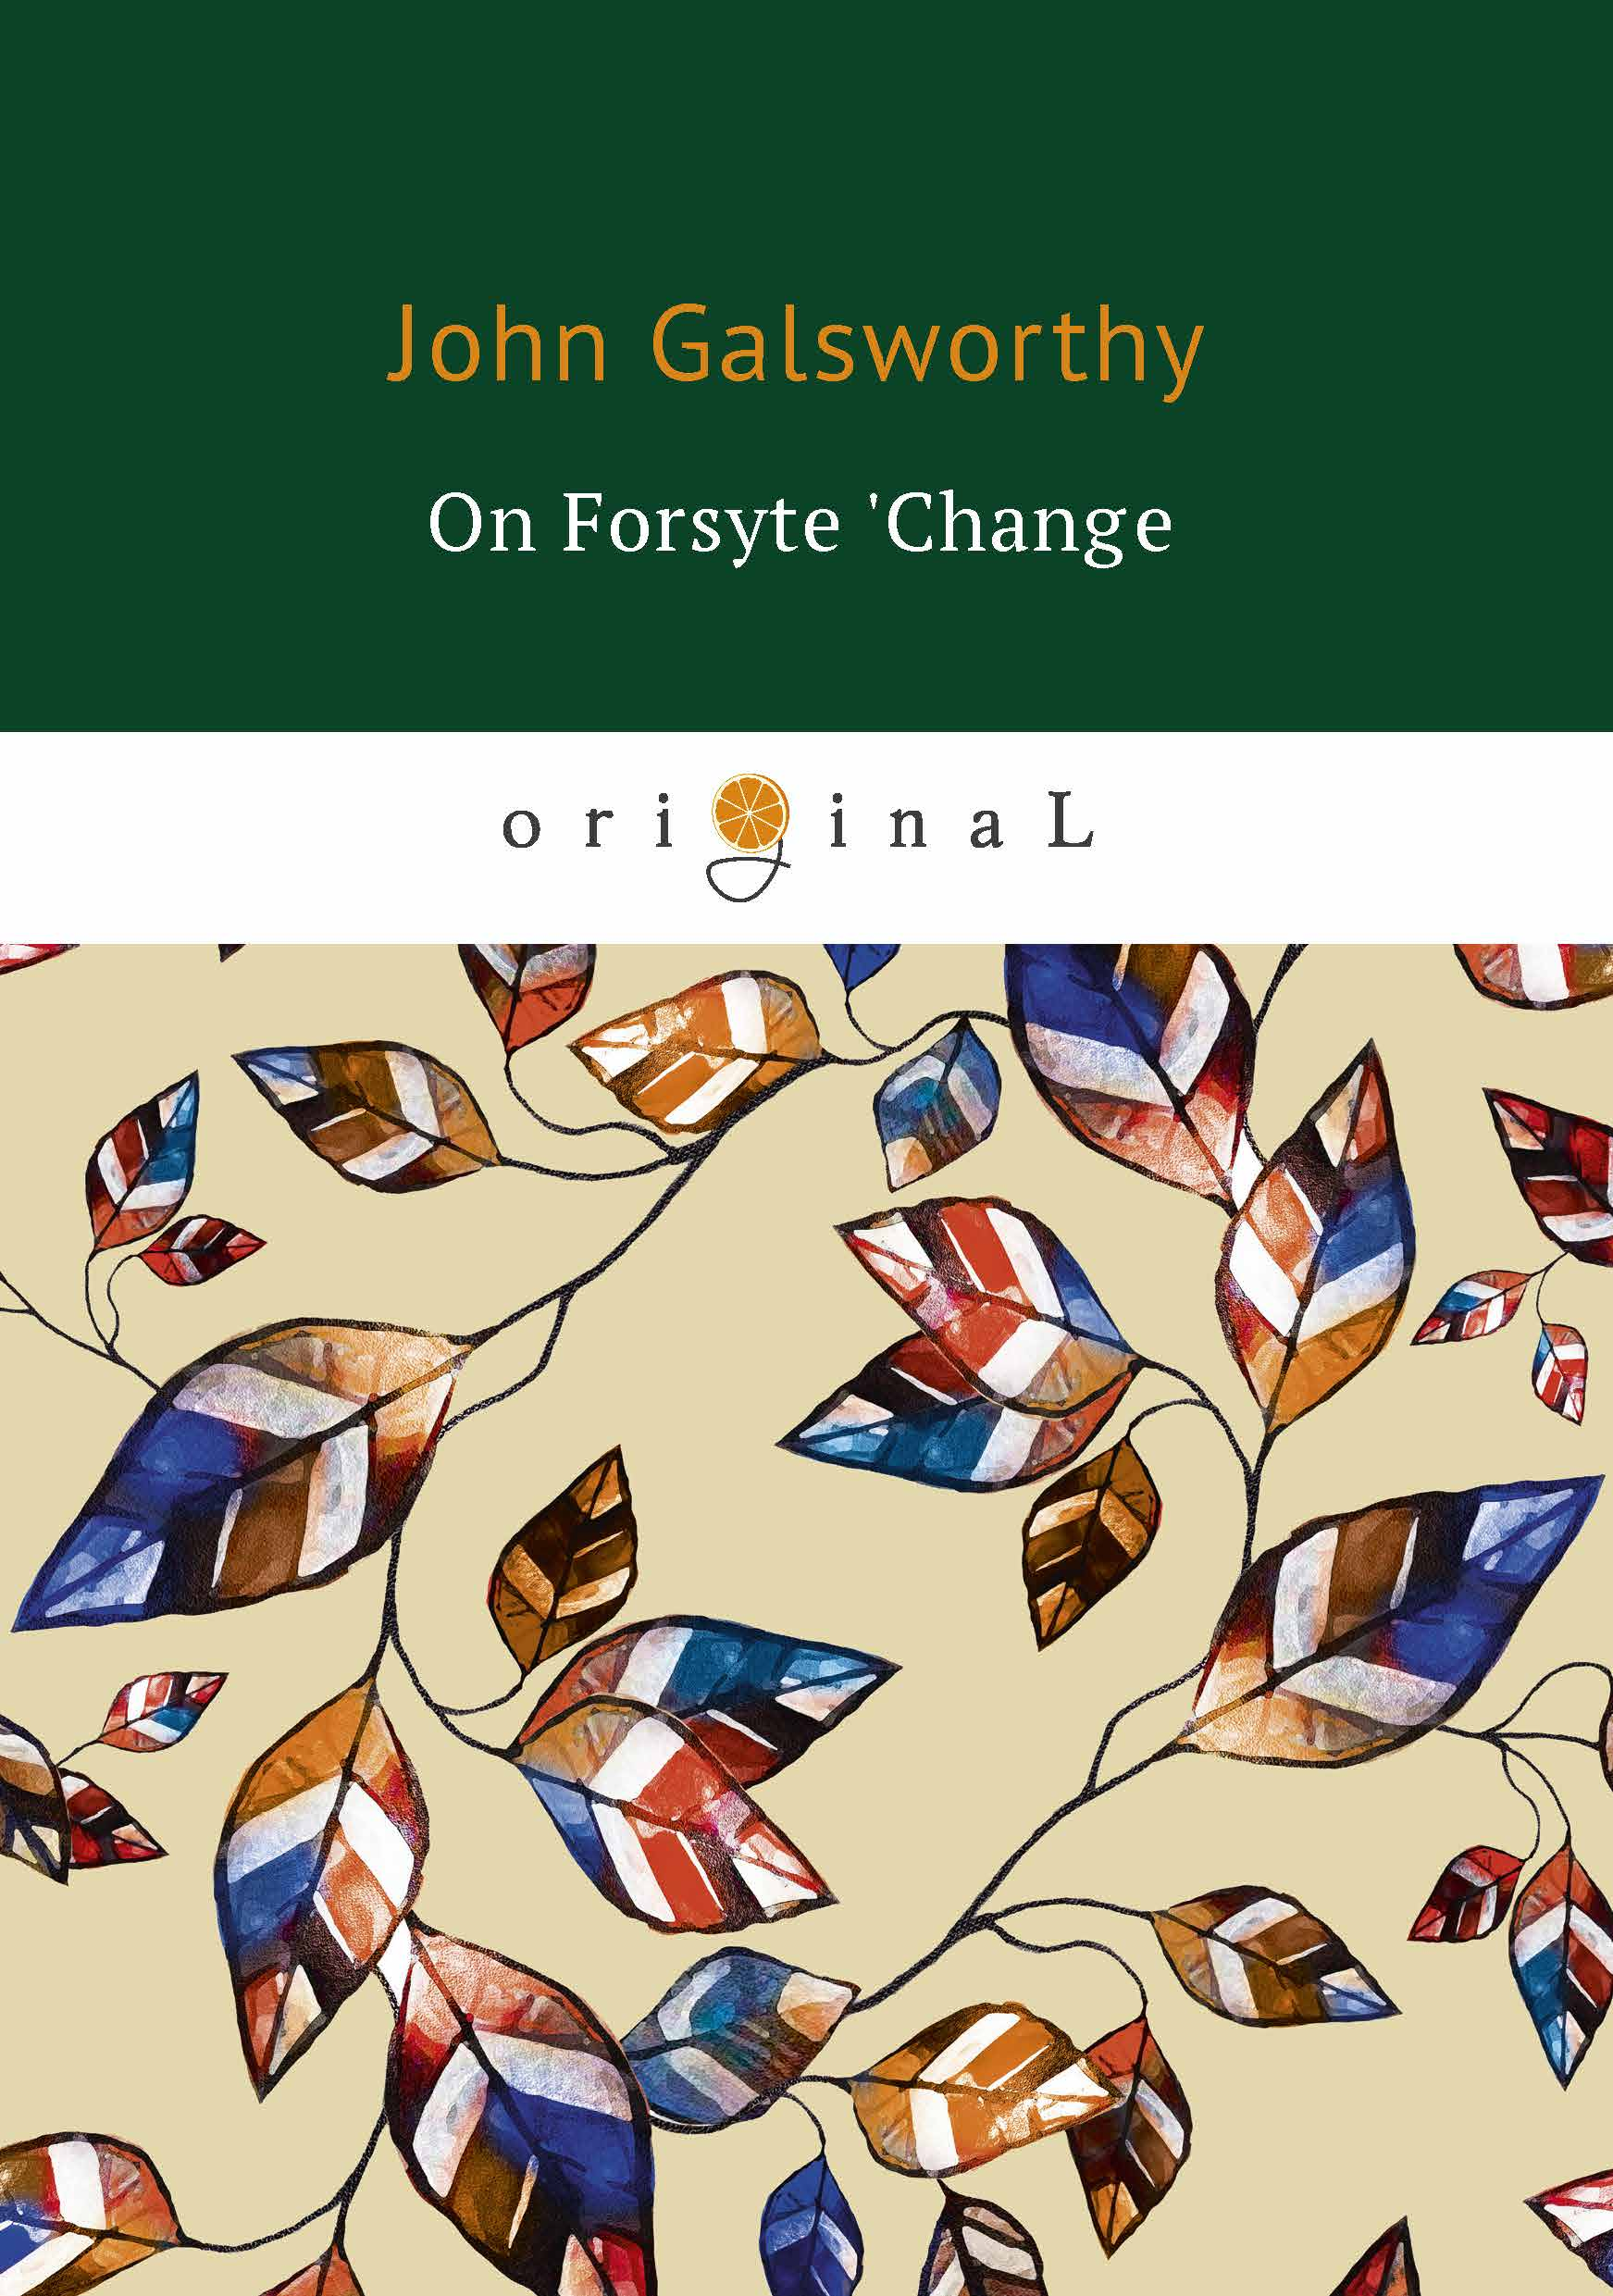 John Galsworthy On Forsyte 'Change ISBN: 978-5-521-06902-6 exercise in older women effects on falls function fear and finances